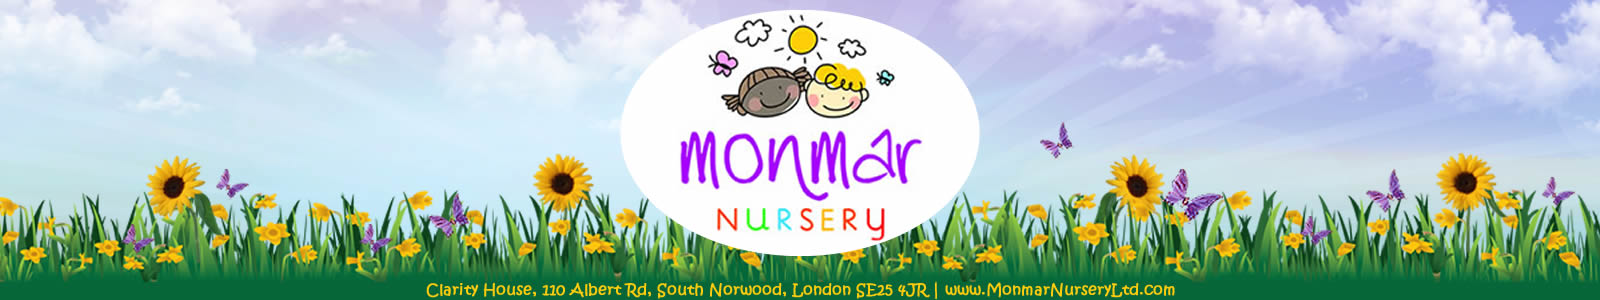 Monmar Nursery Pre School Day Norwood South